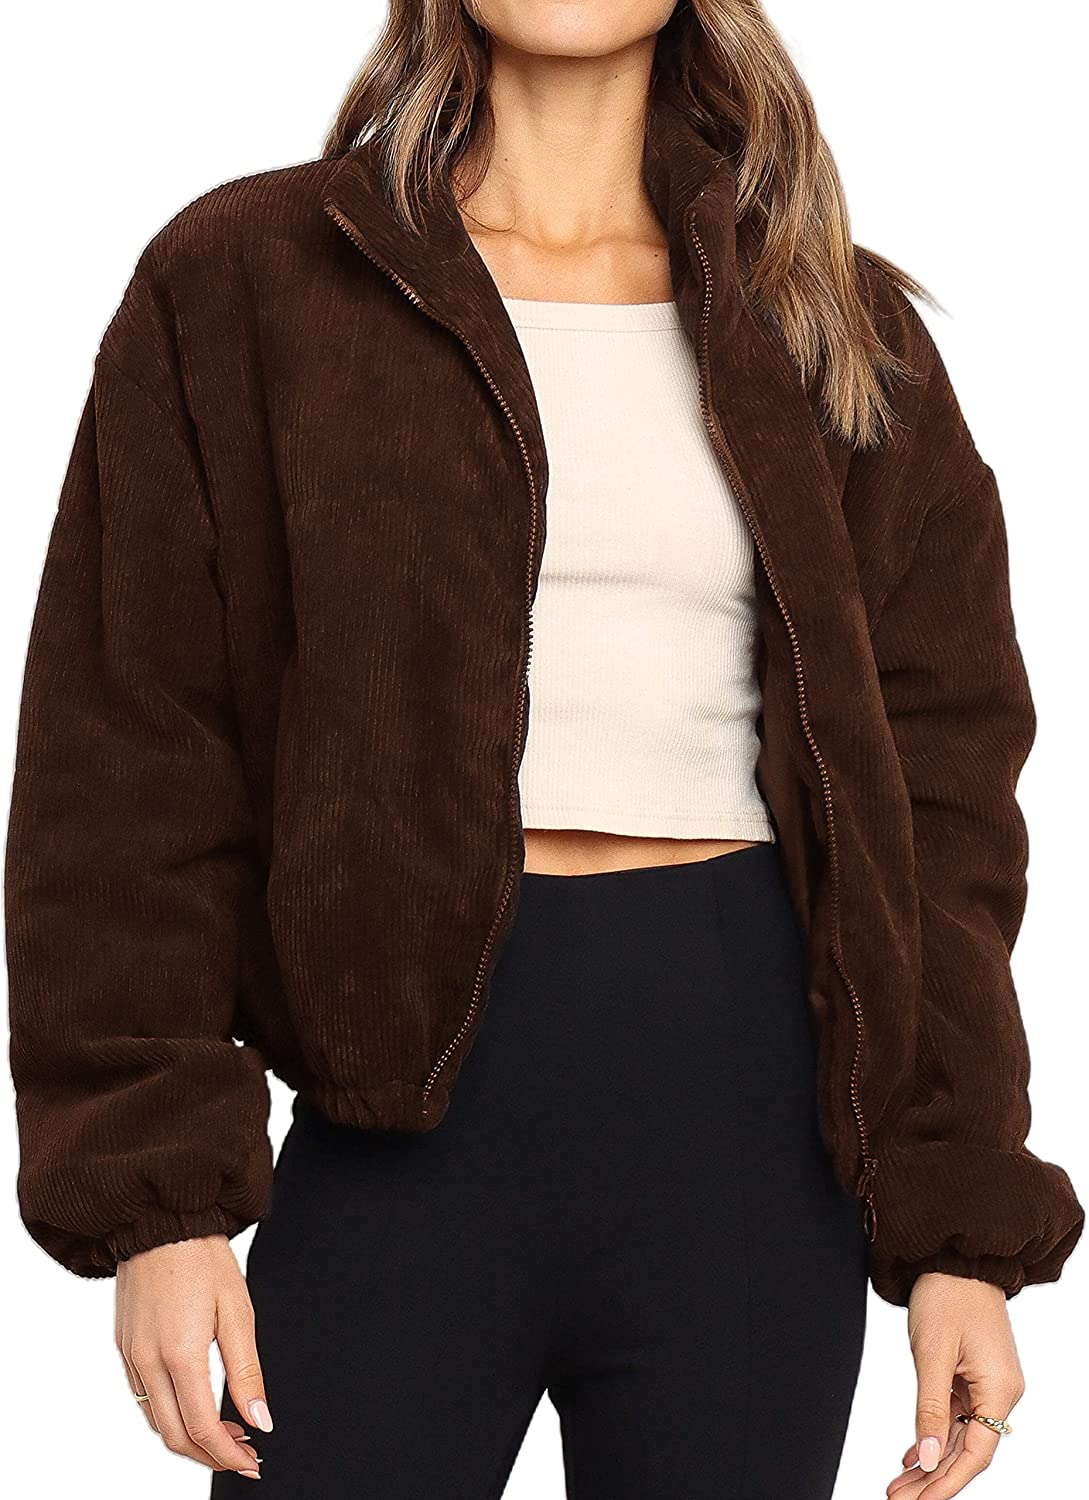 Yeokou Women's Corduroy Puffer Jacket Long Sleeve Quilted Padded Bubble Coat